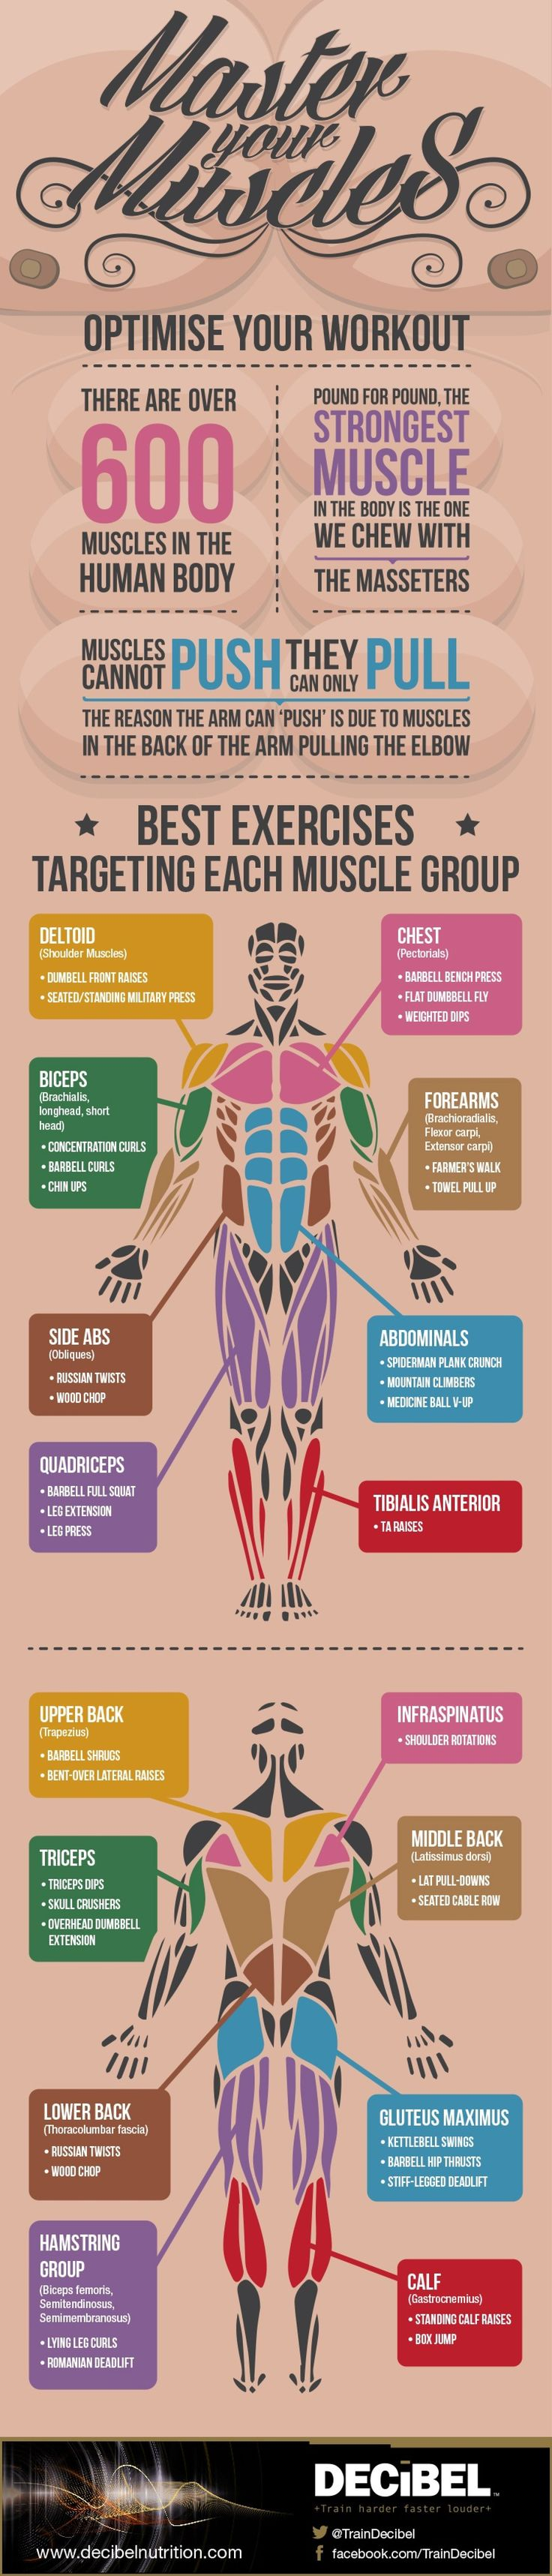 Master Your Muscles: Optimise Your Workout Infographic #Health #Fitness #Workout #ワークアウト